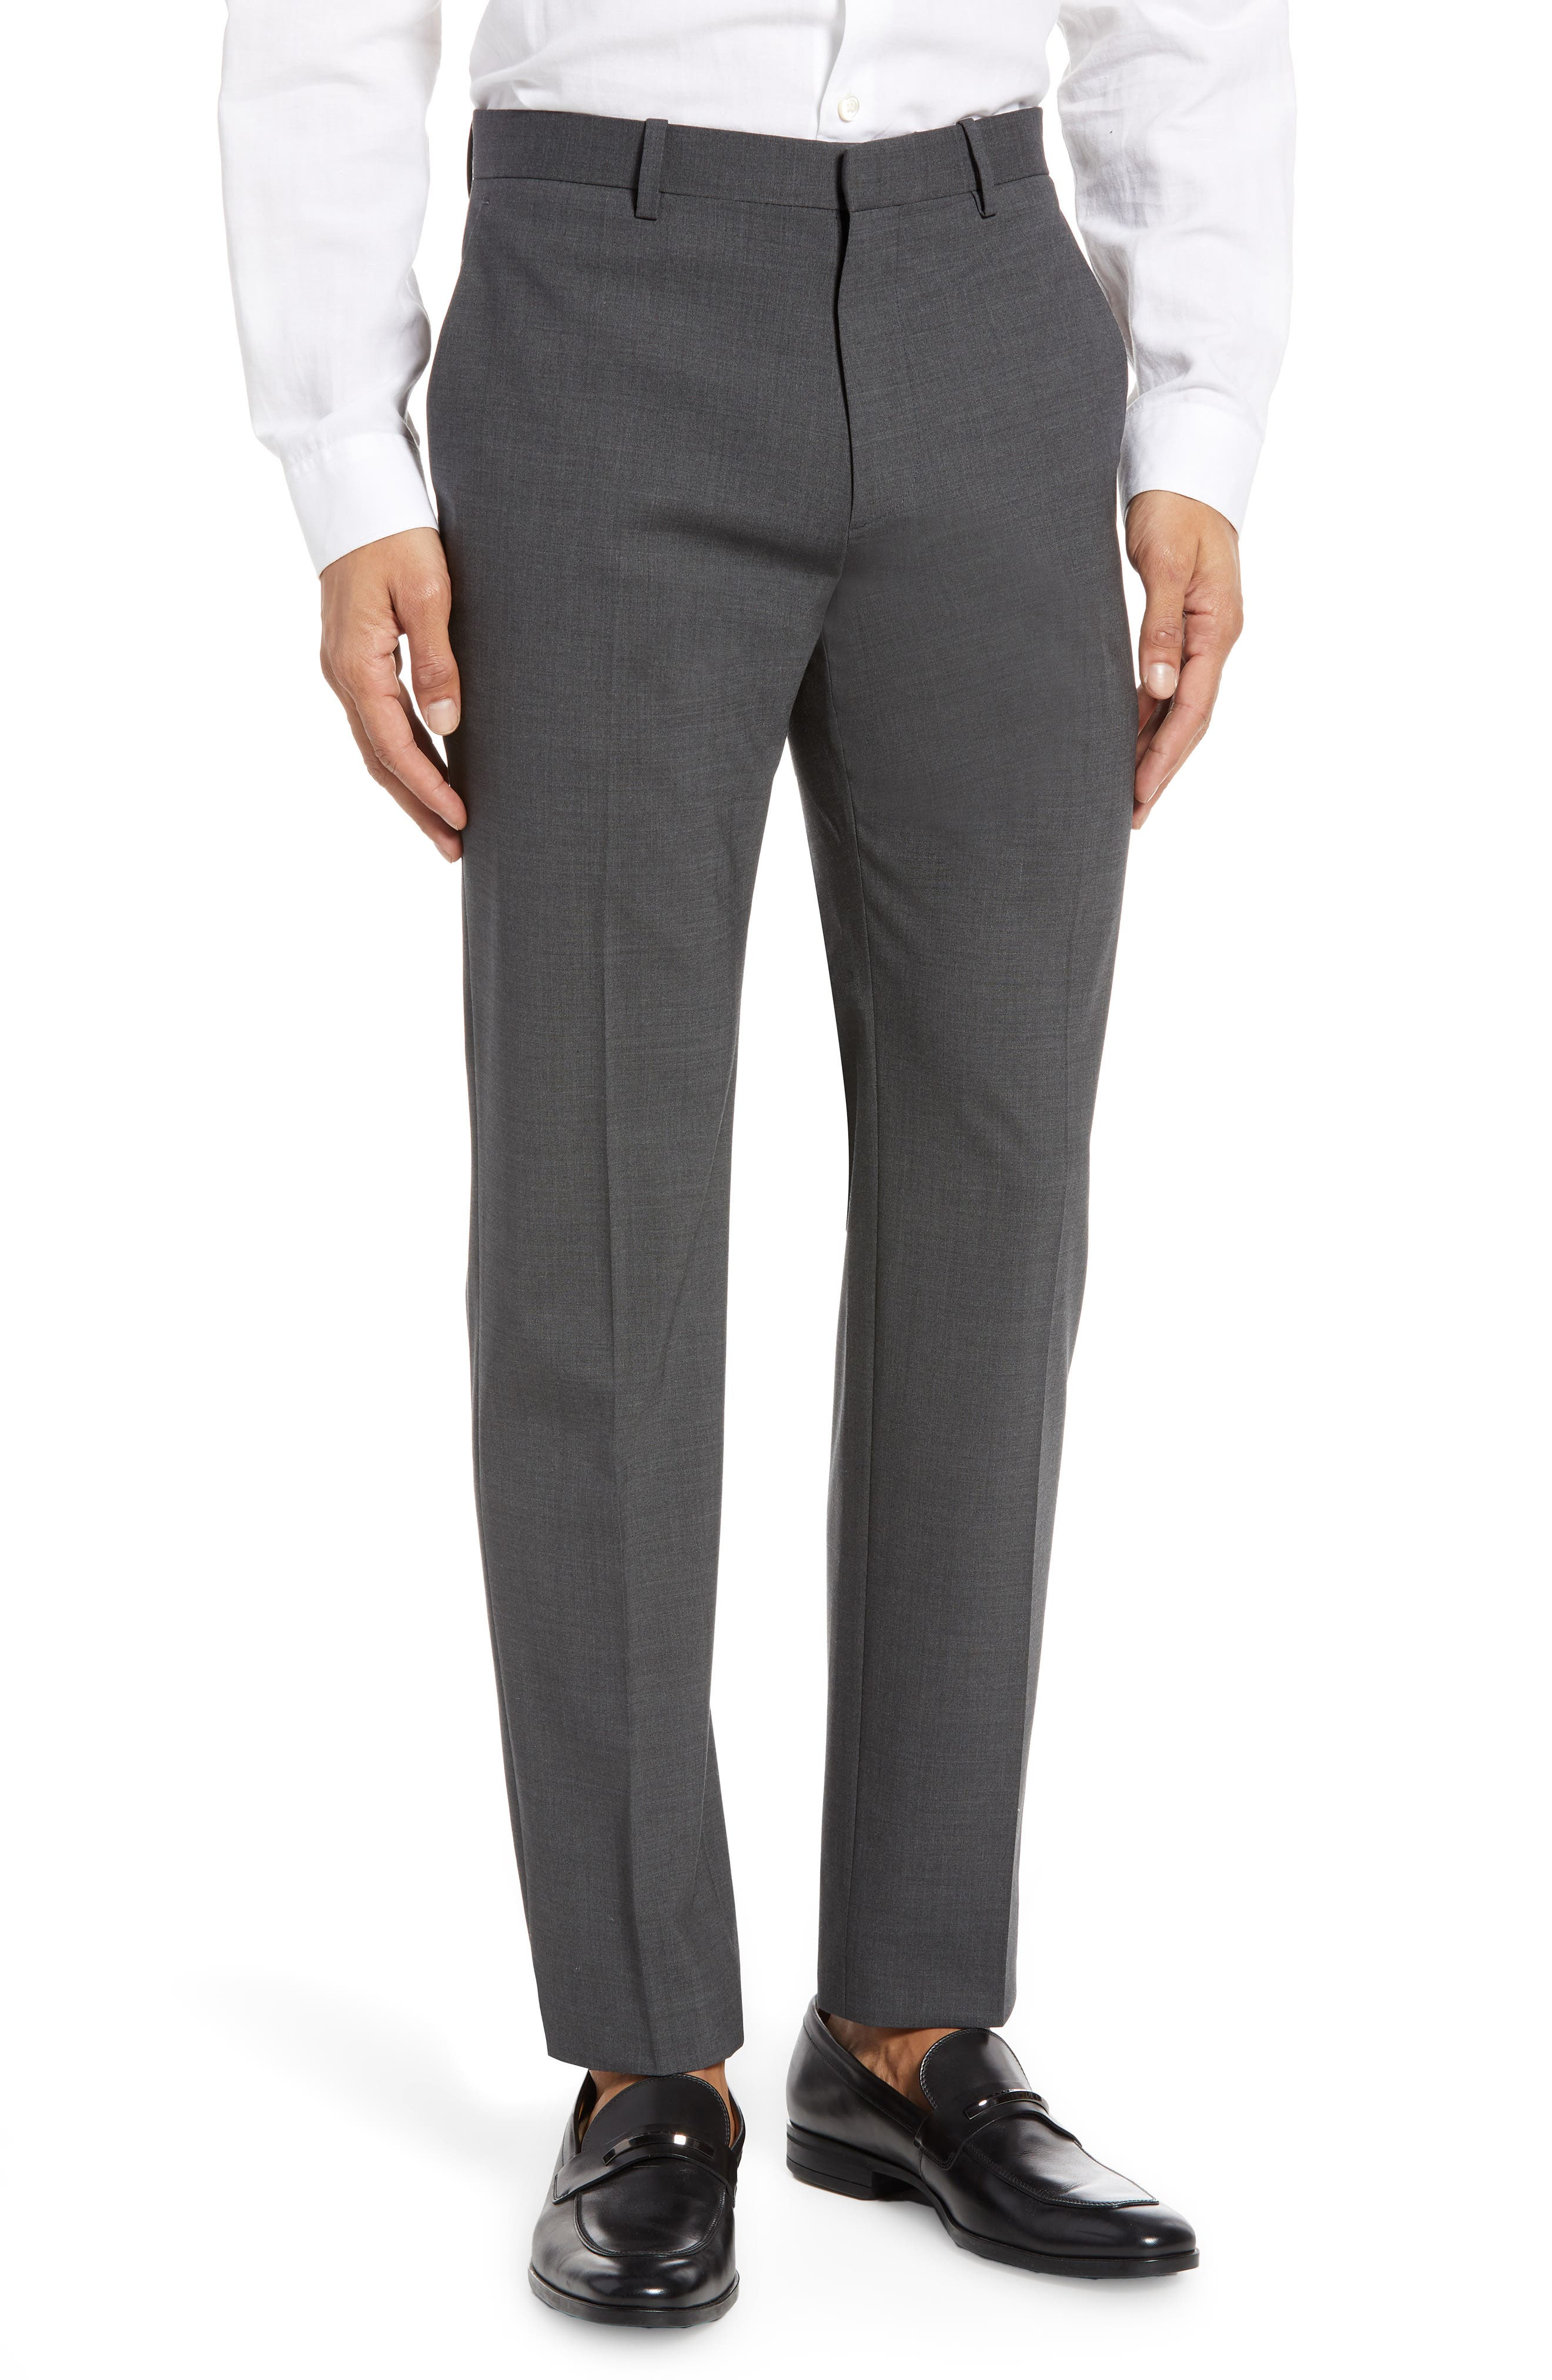 THEORY, Mayer New Tailor 2 Wool Trousers, Main thumbnail 1, color, CHARCOAL